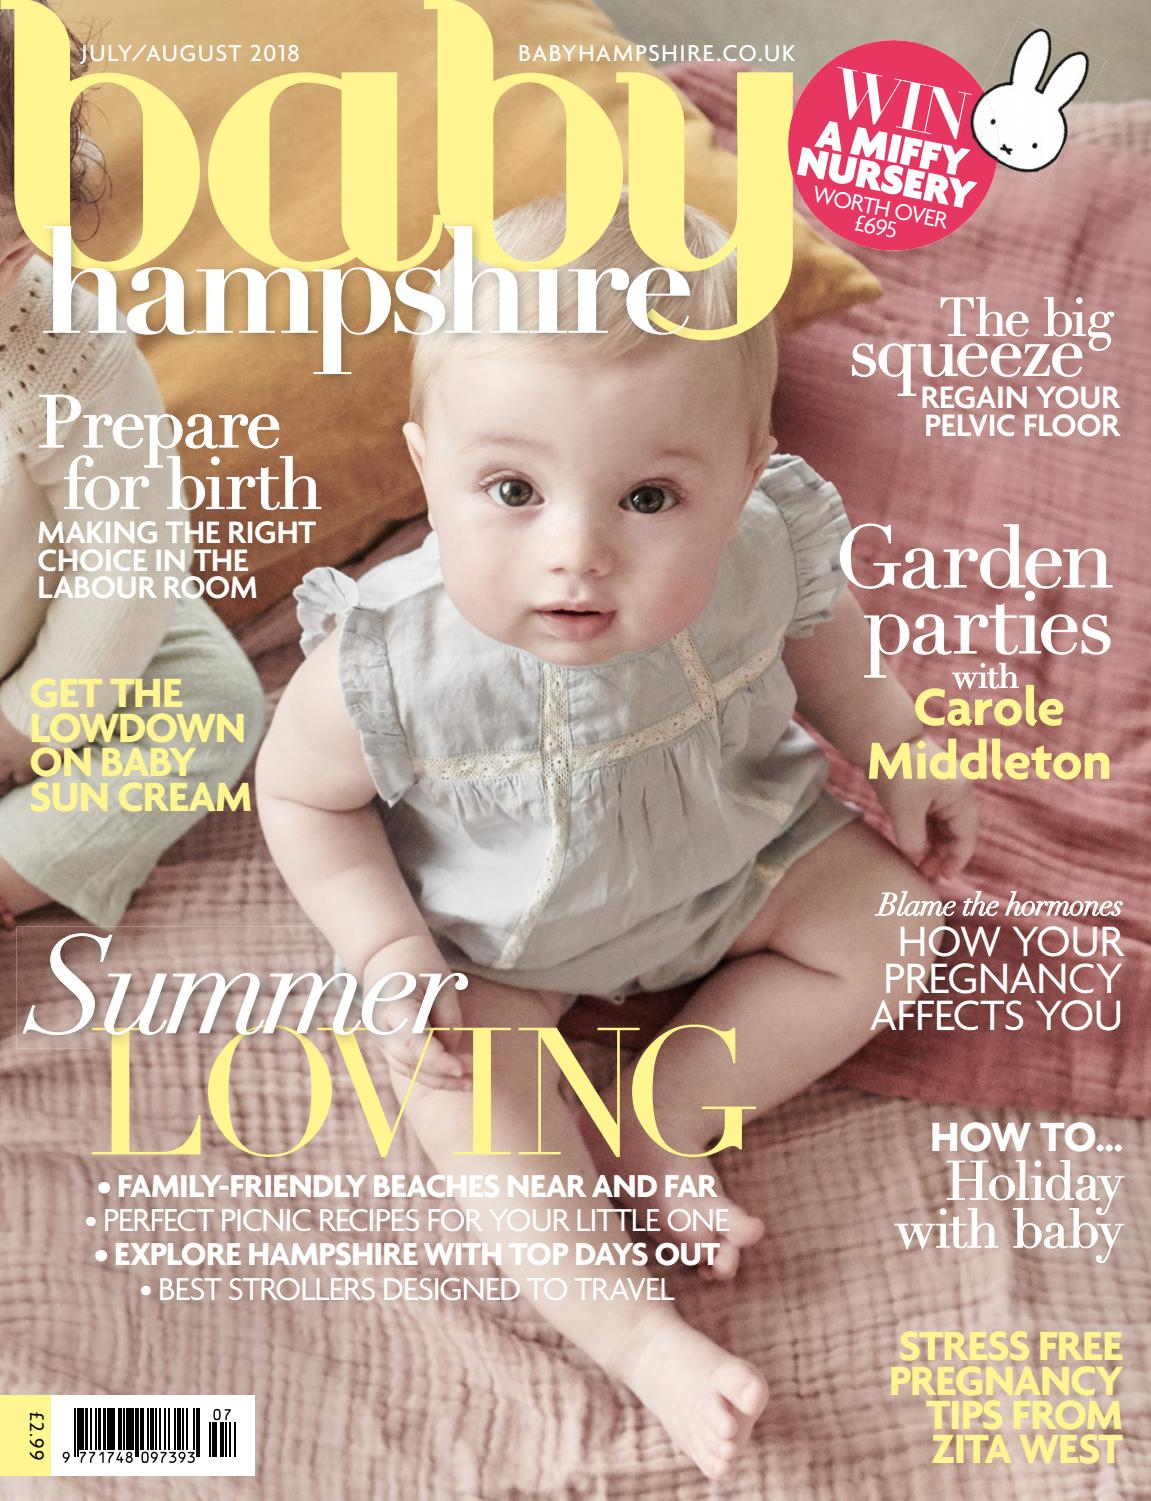 42368438be6f Baby Hampshire July August 2018 by The Chelsea Magazine Company - issuu